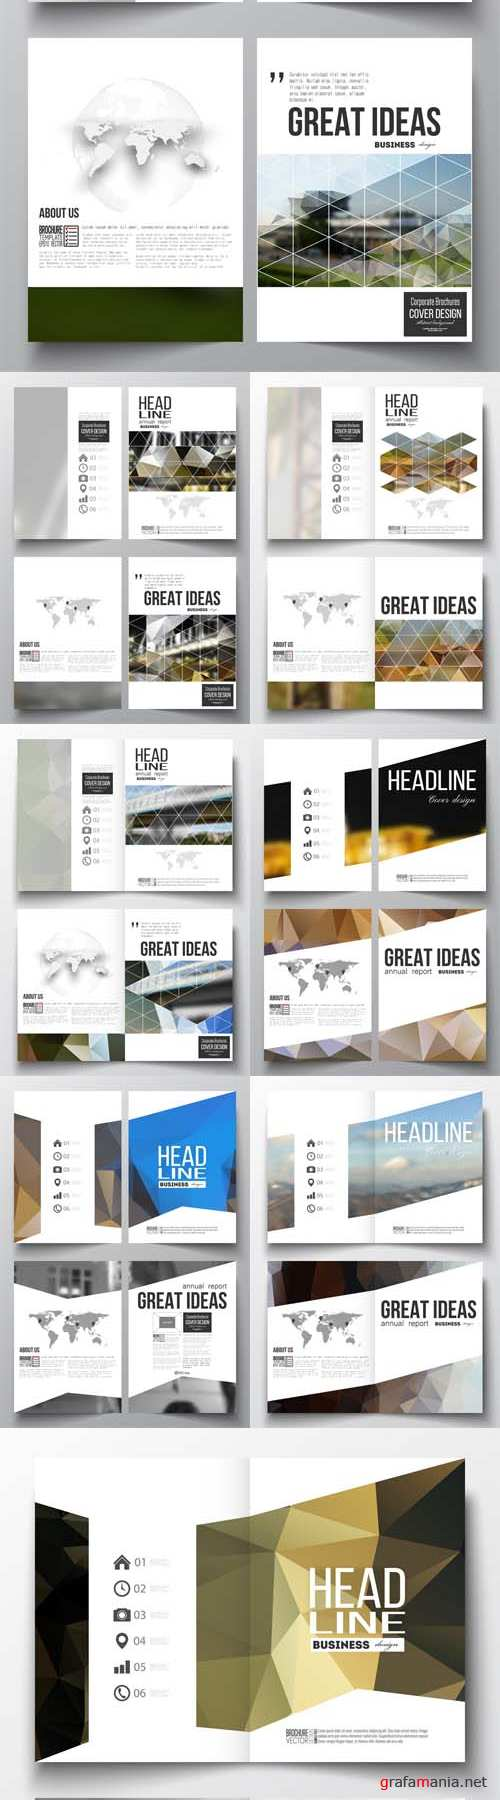 Vector Business Templates for Brochure Magazine, Booklet 3